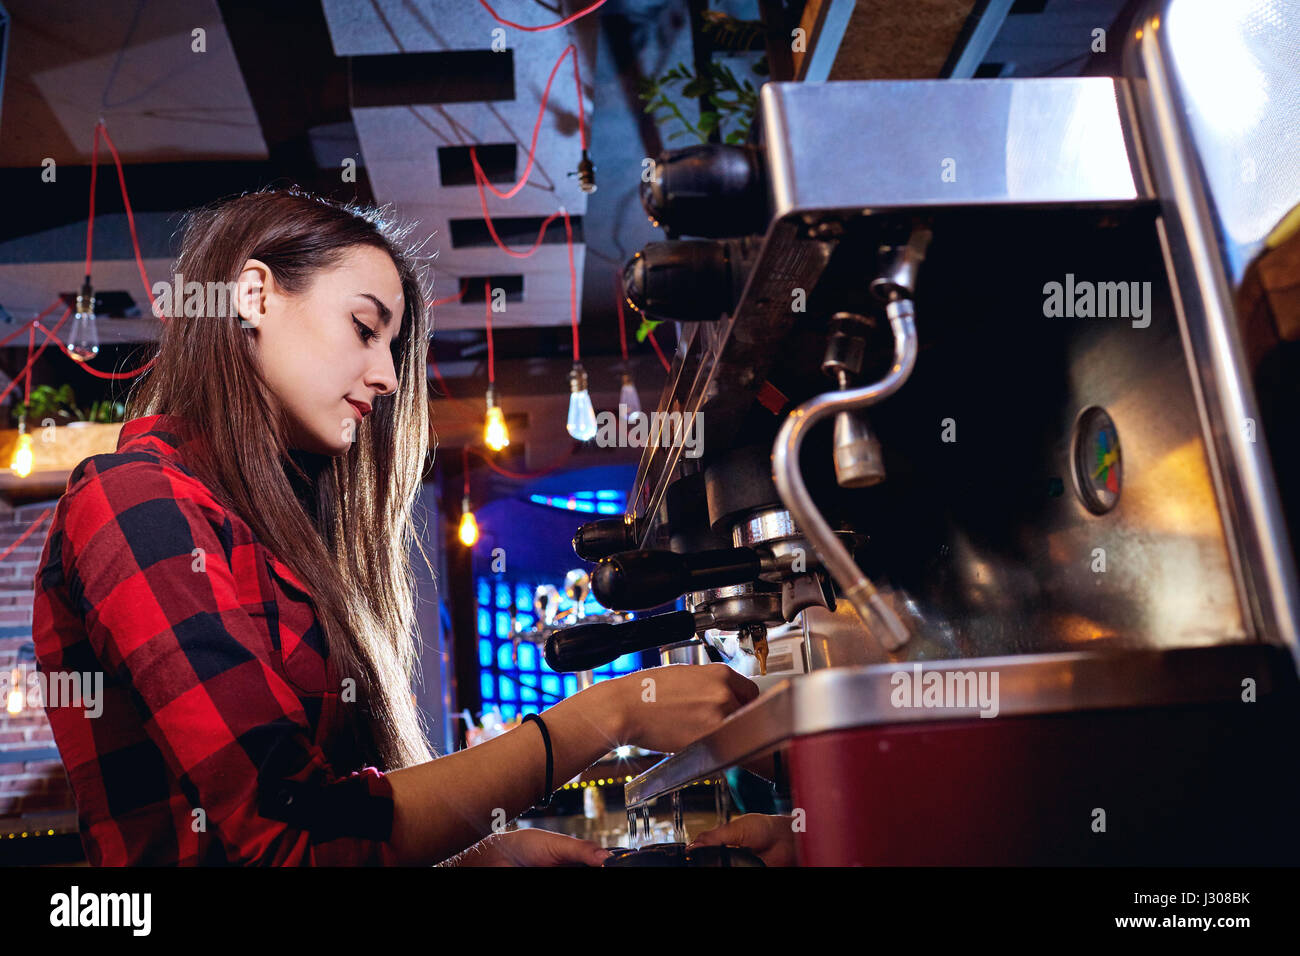 Bartender girl is making coffee in a bar - Stock Image